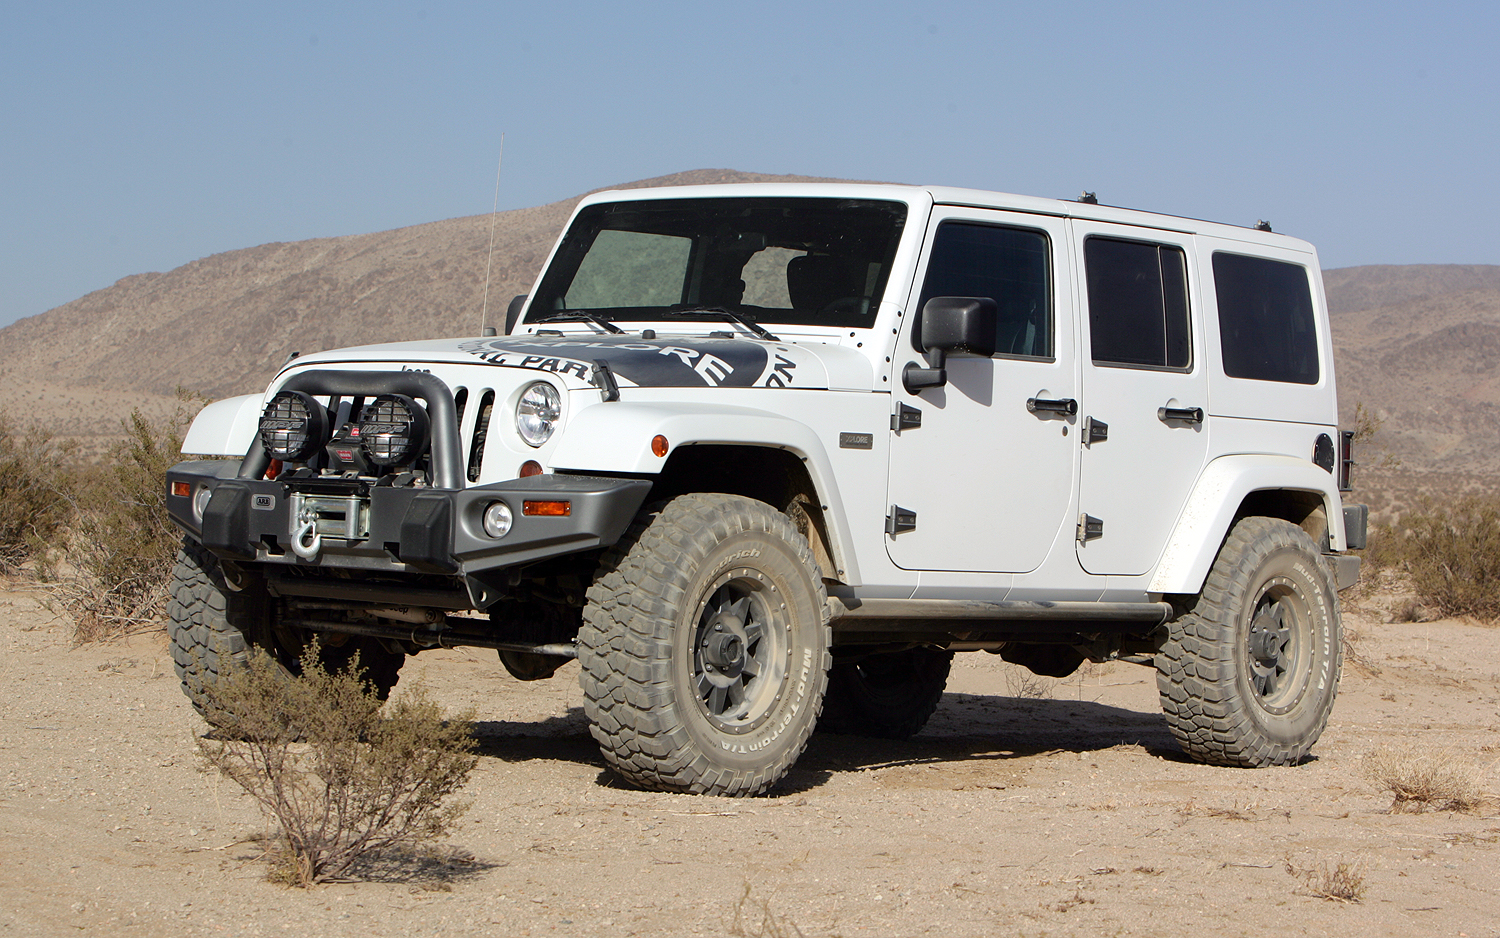 jeep wrangler unlimited technical details history photos on better parts ltd. Black Bedroom Furniture Sets. Home Design Ideas